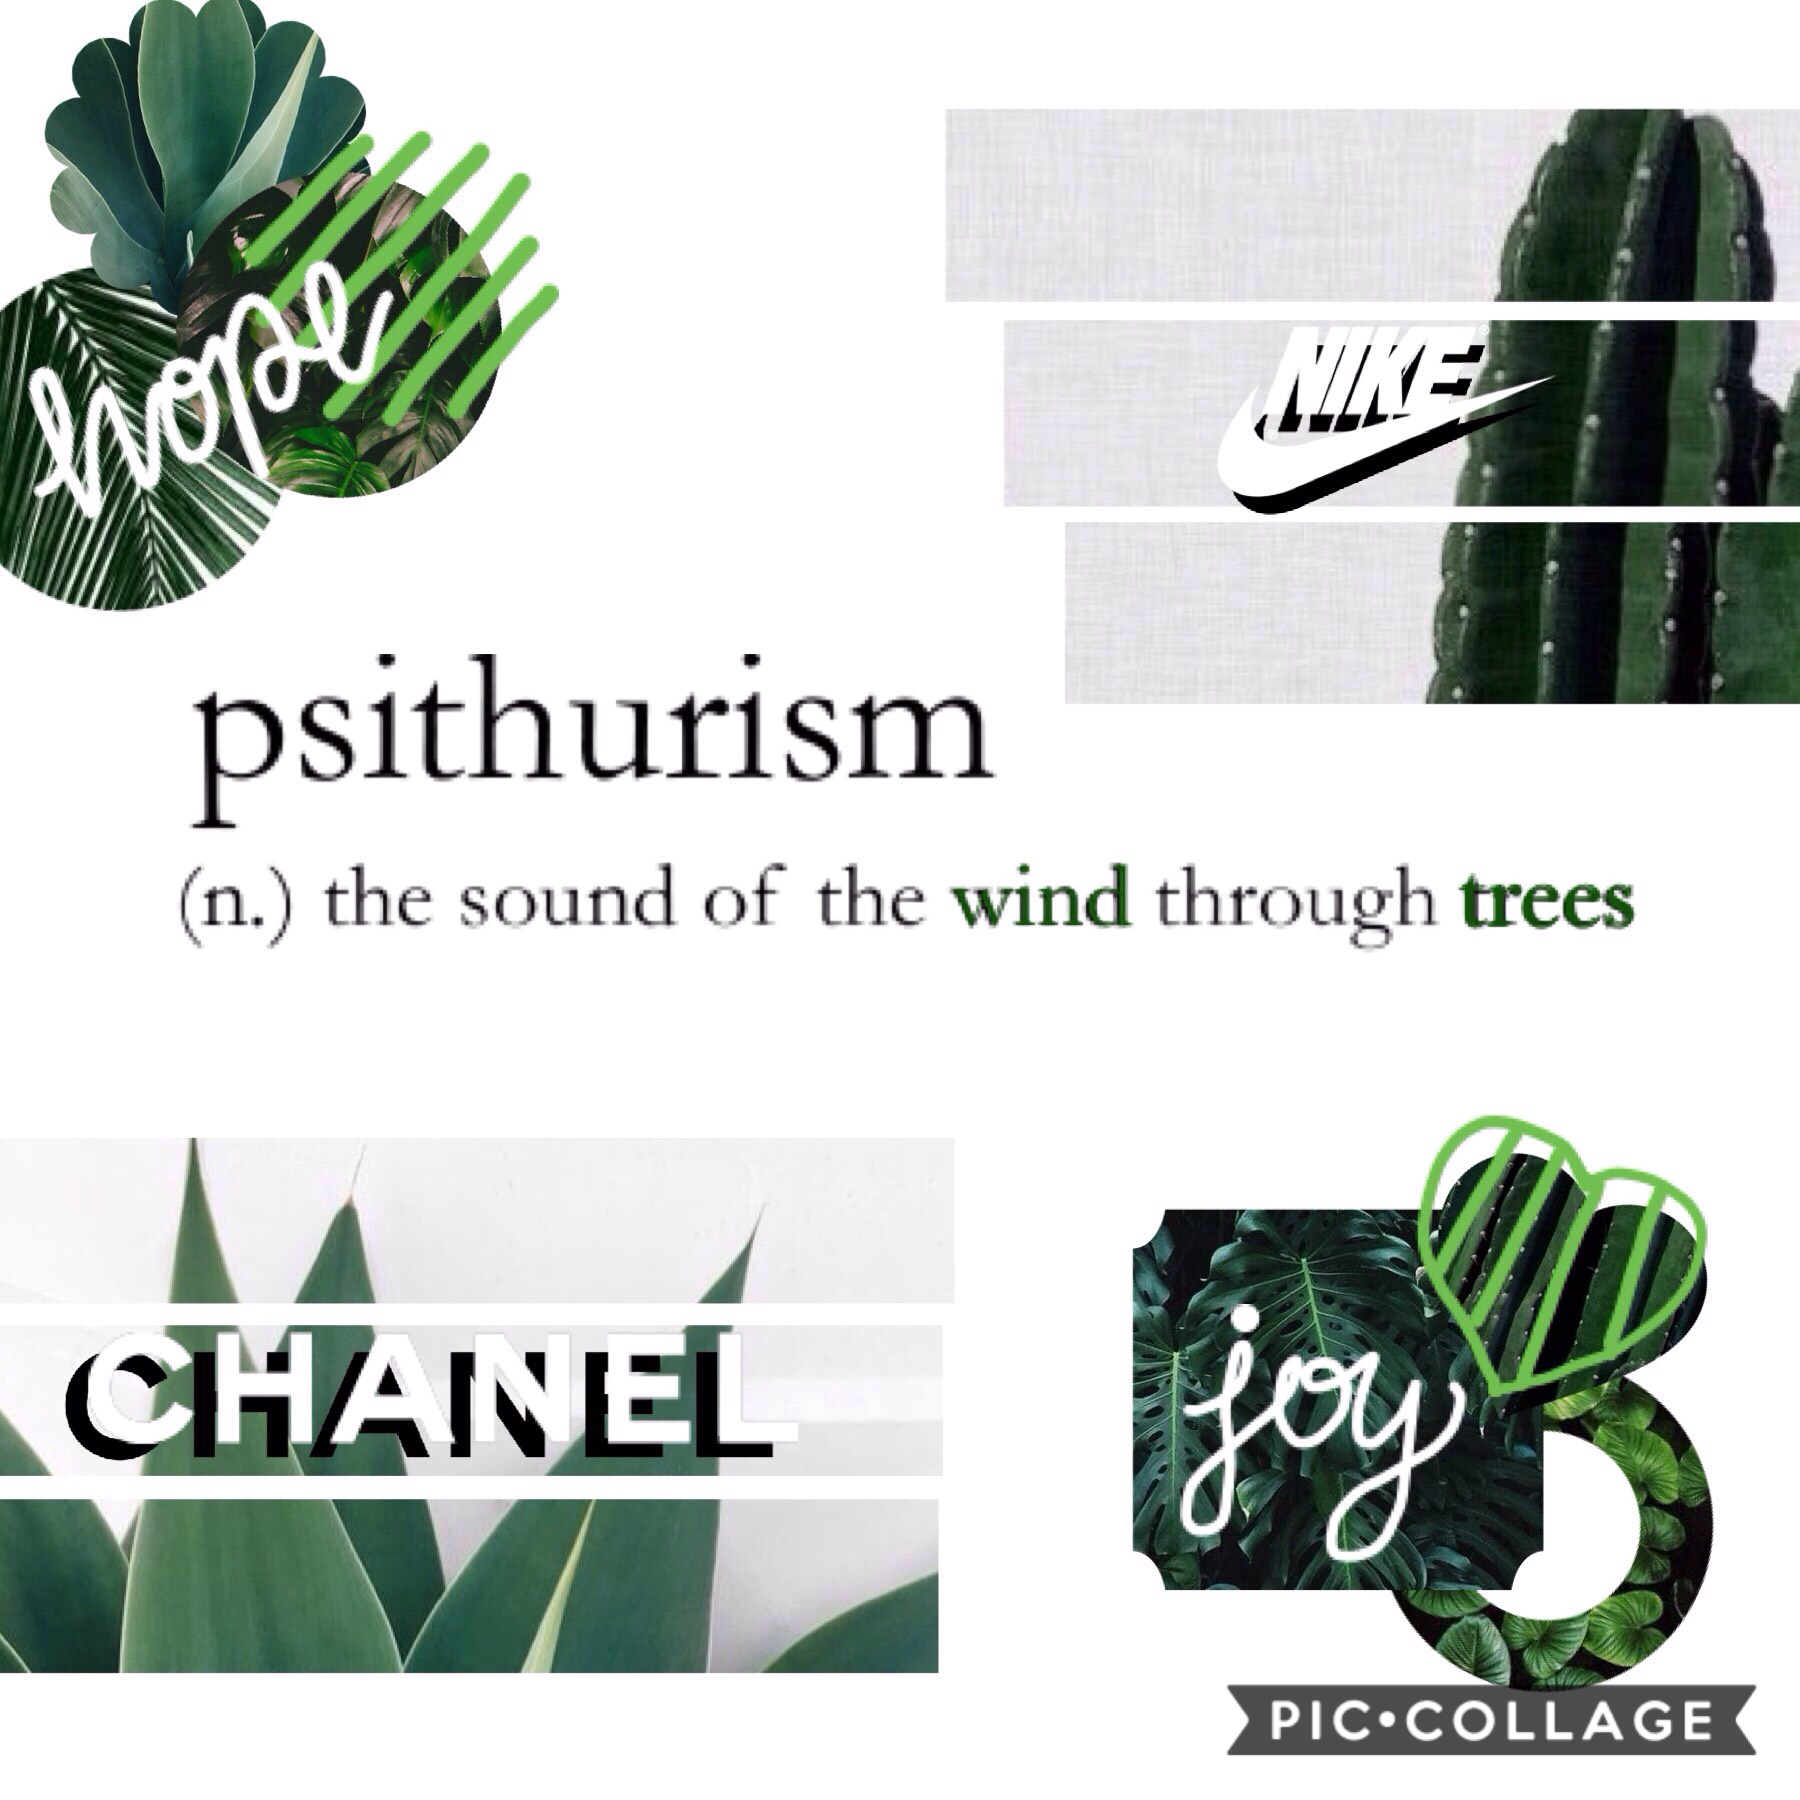 [ psithurism ] ~ 'the sound of the wind through trees' 🌲🌬🌳🌵 [ 17/08 ] 2nd collage of this new theme and I already feel refReShEd✨😇 even though assessments are filling my mind, I'm making room for you guys!🤗 I hope you week is going well and byeee! tyys! m